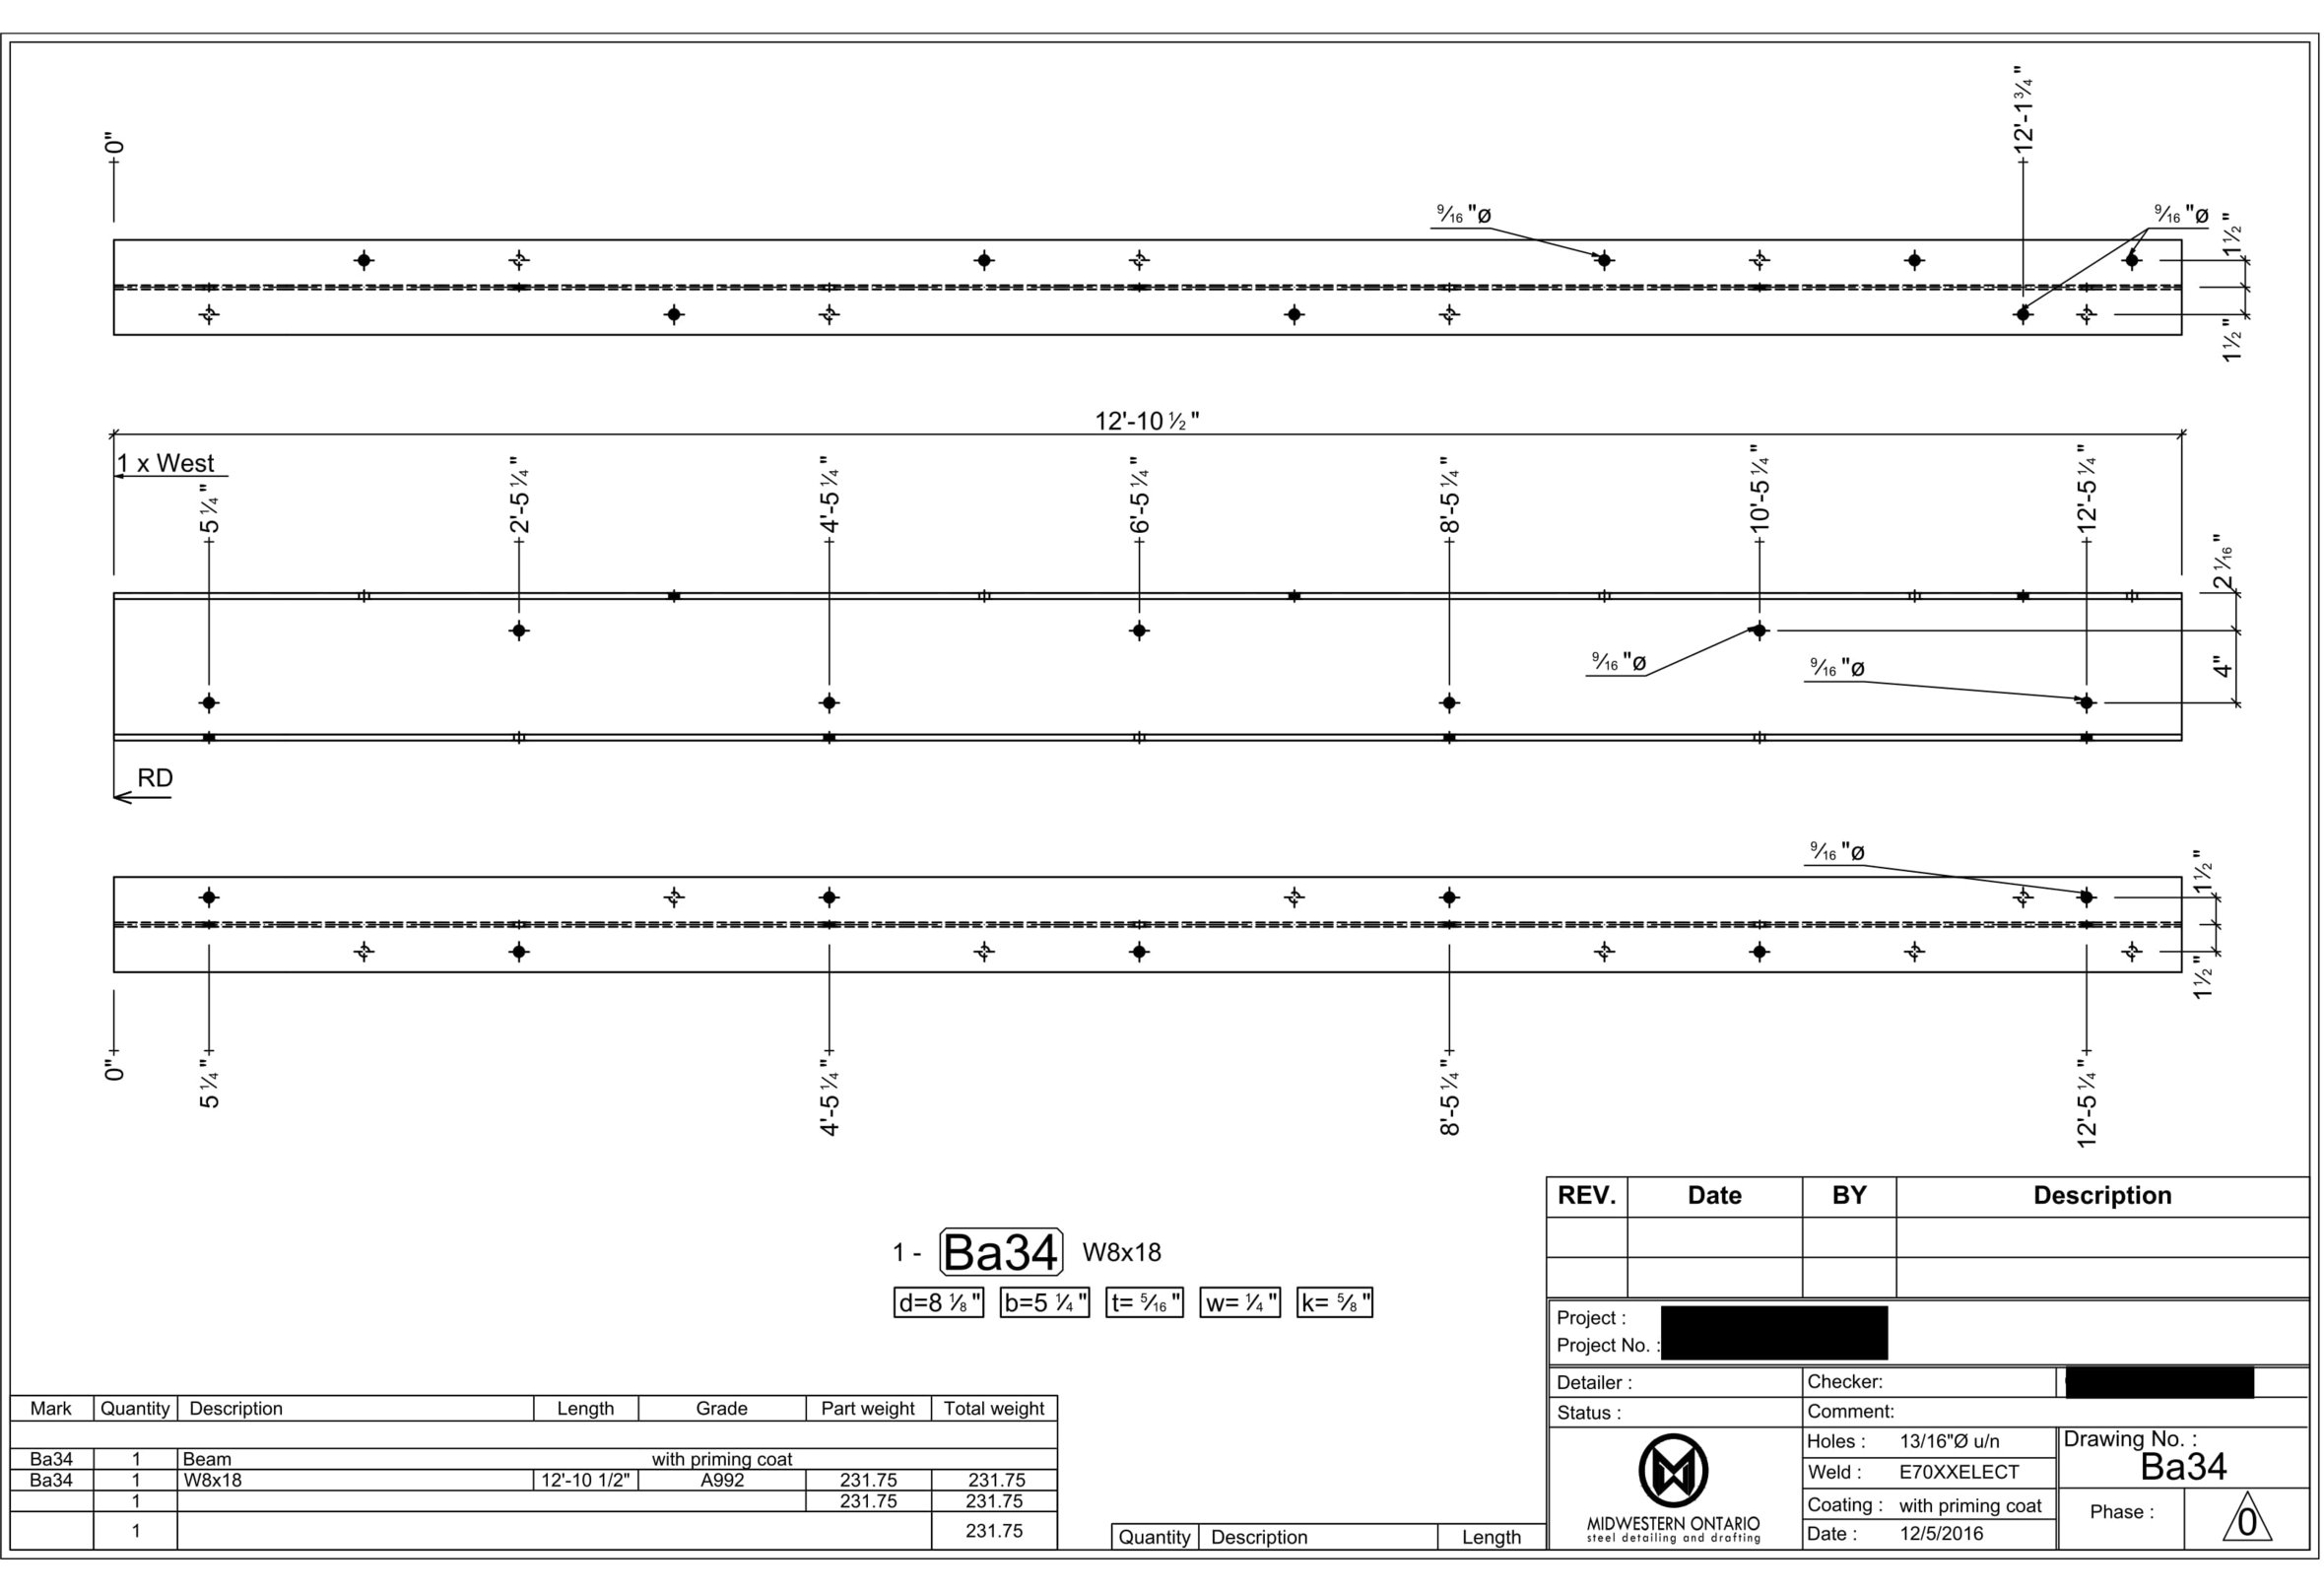 Assembly Ba34 Sheet 34-ANSI-B Advance Steel-1.jpg